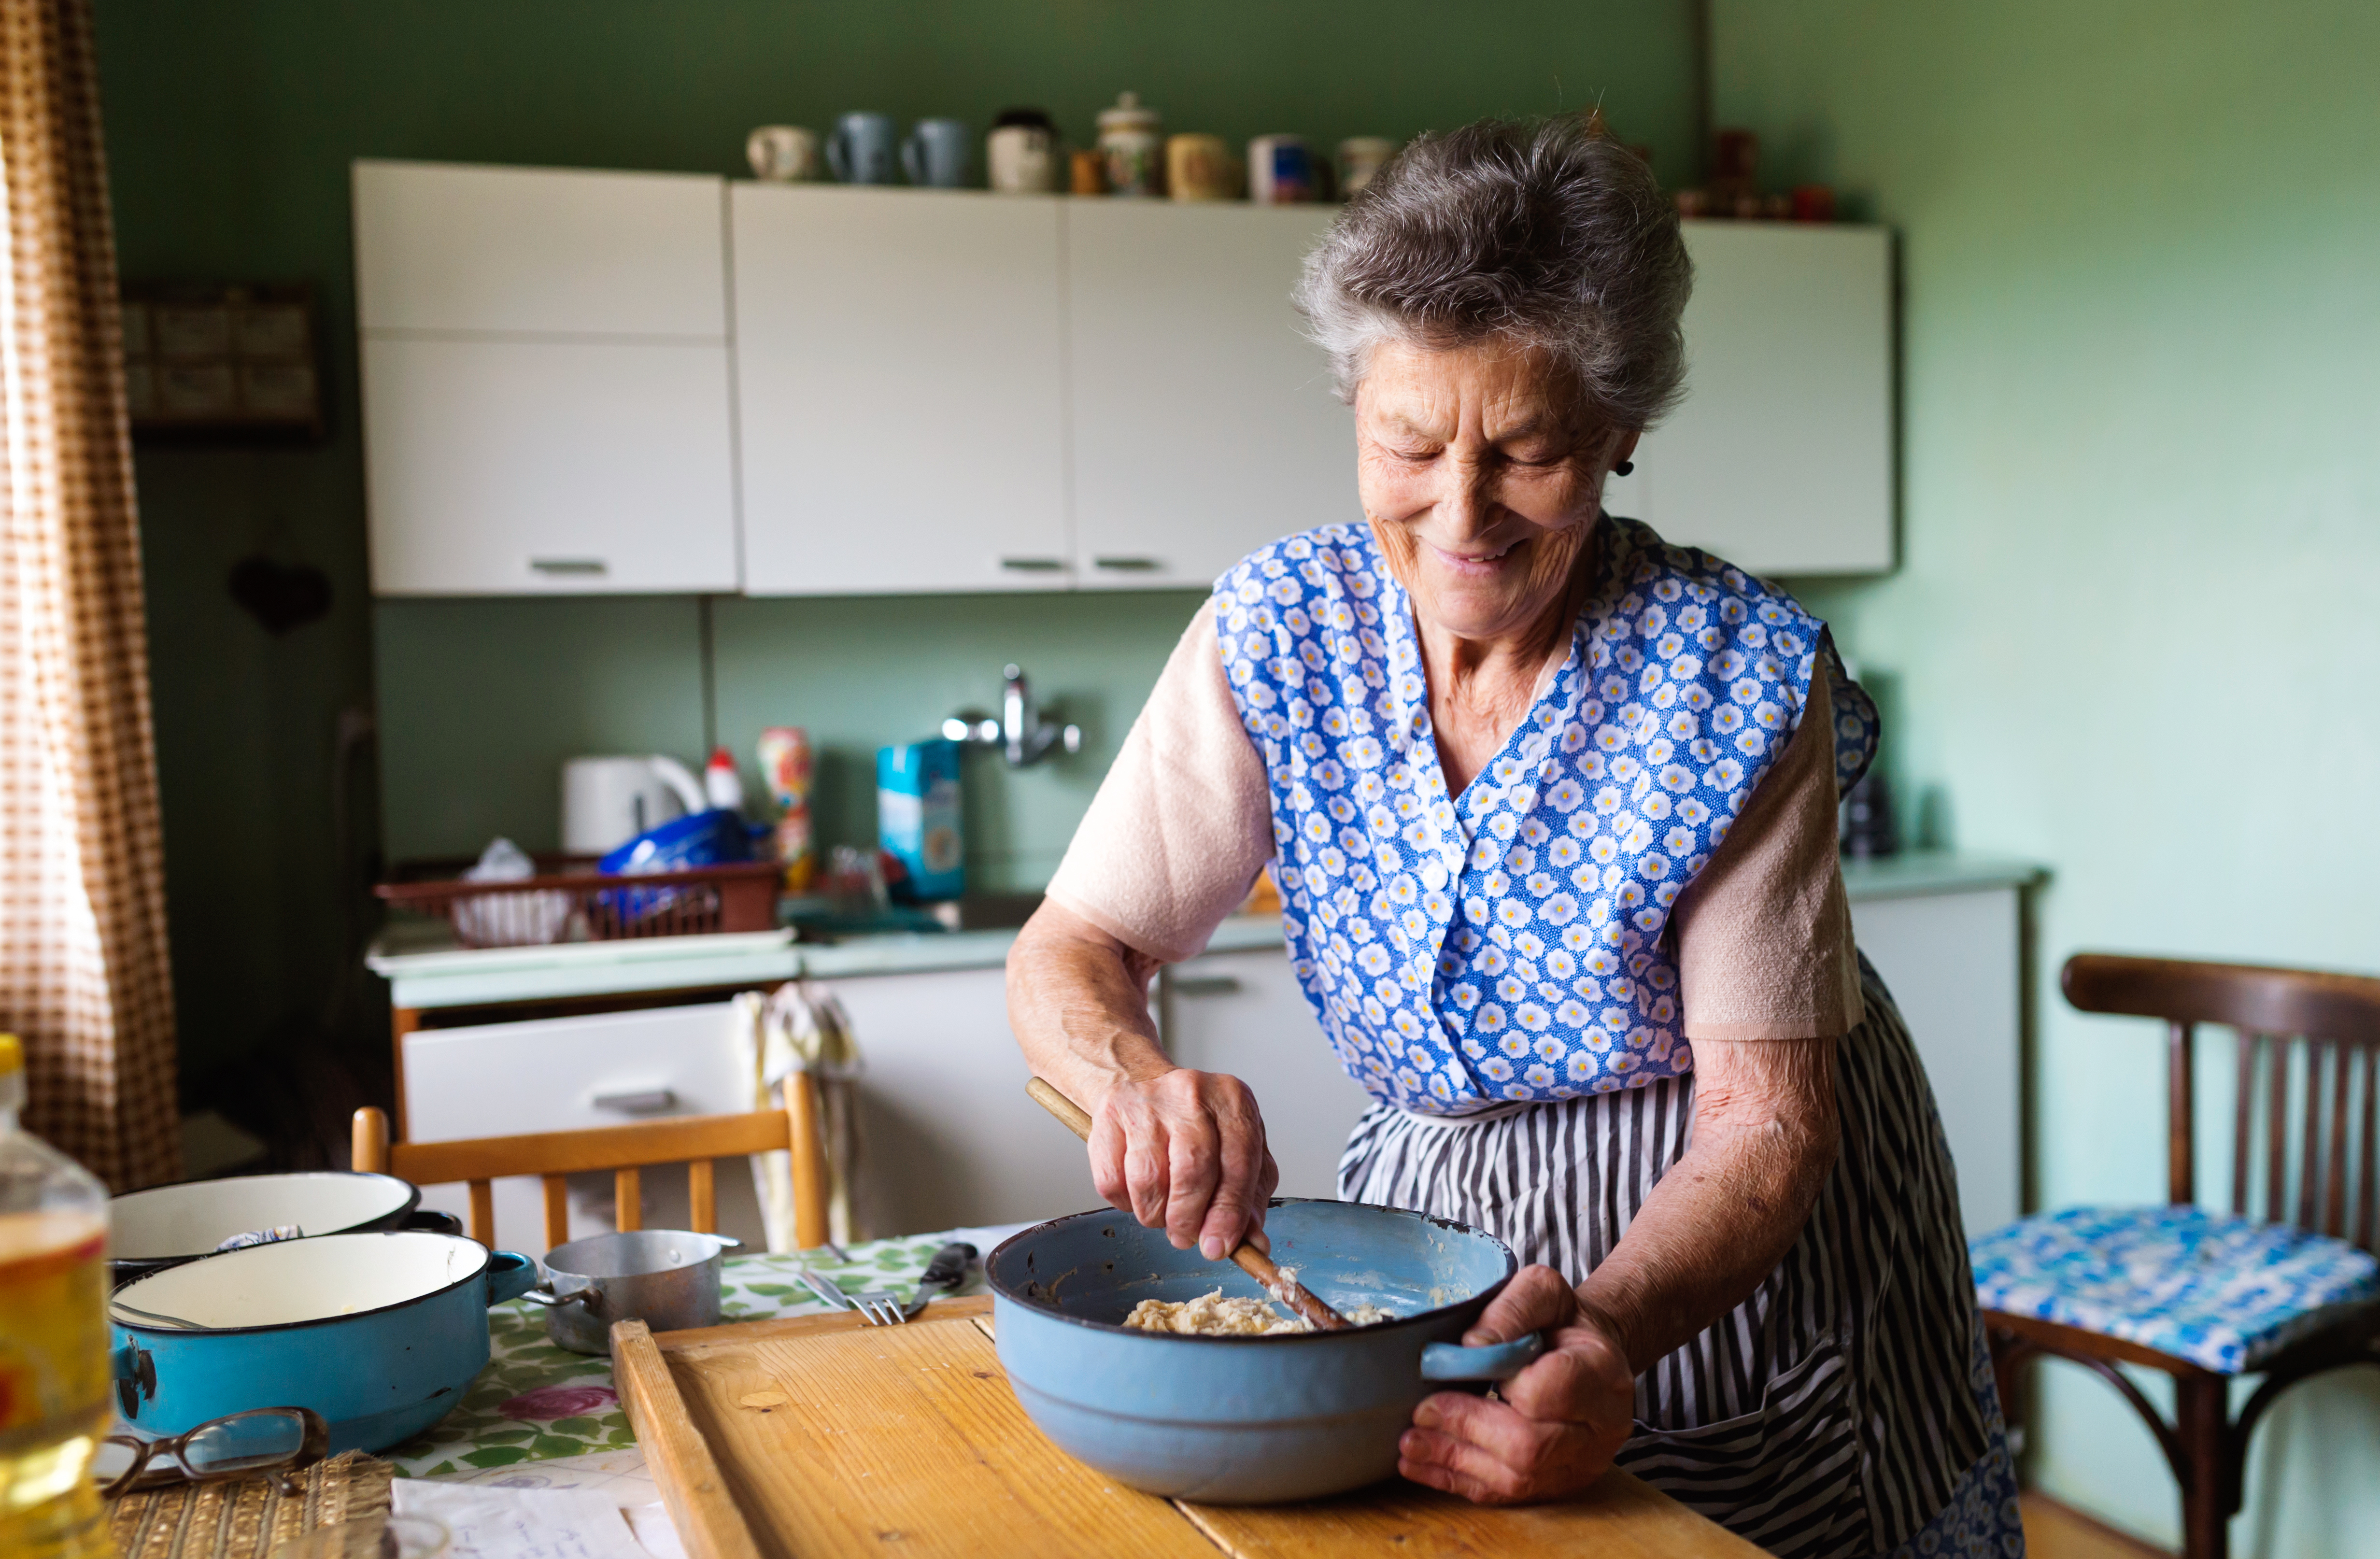 Elderly women baking in her kitchen with a smile on her face